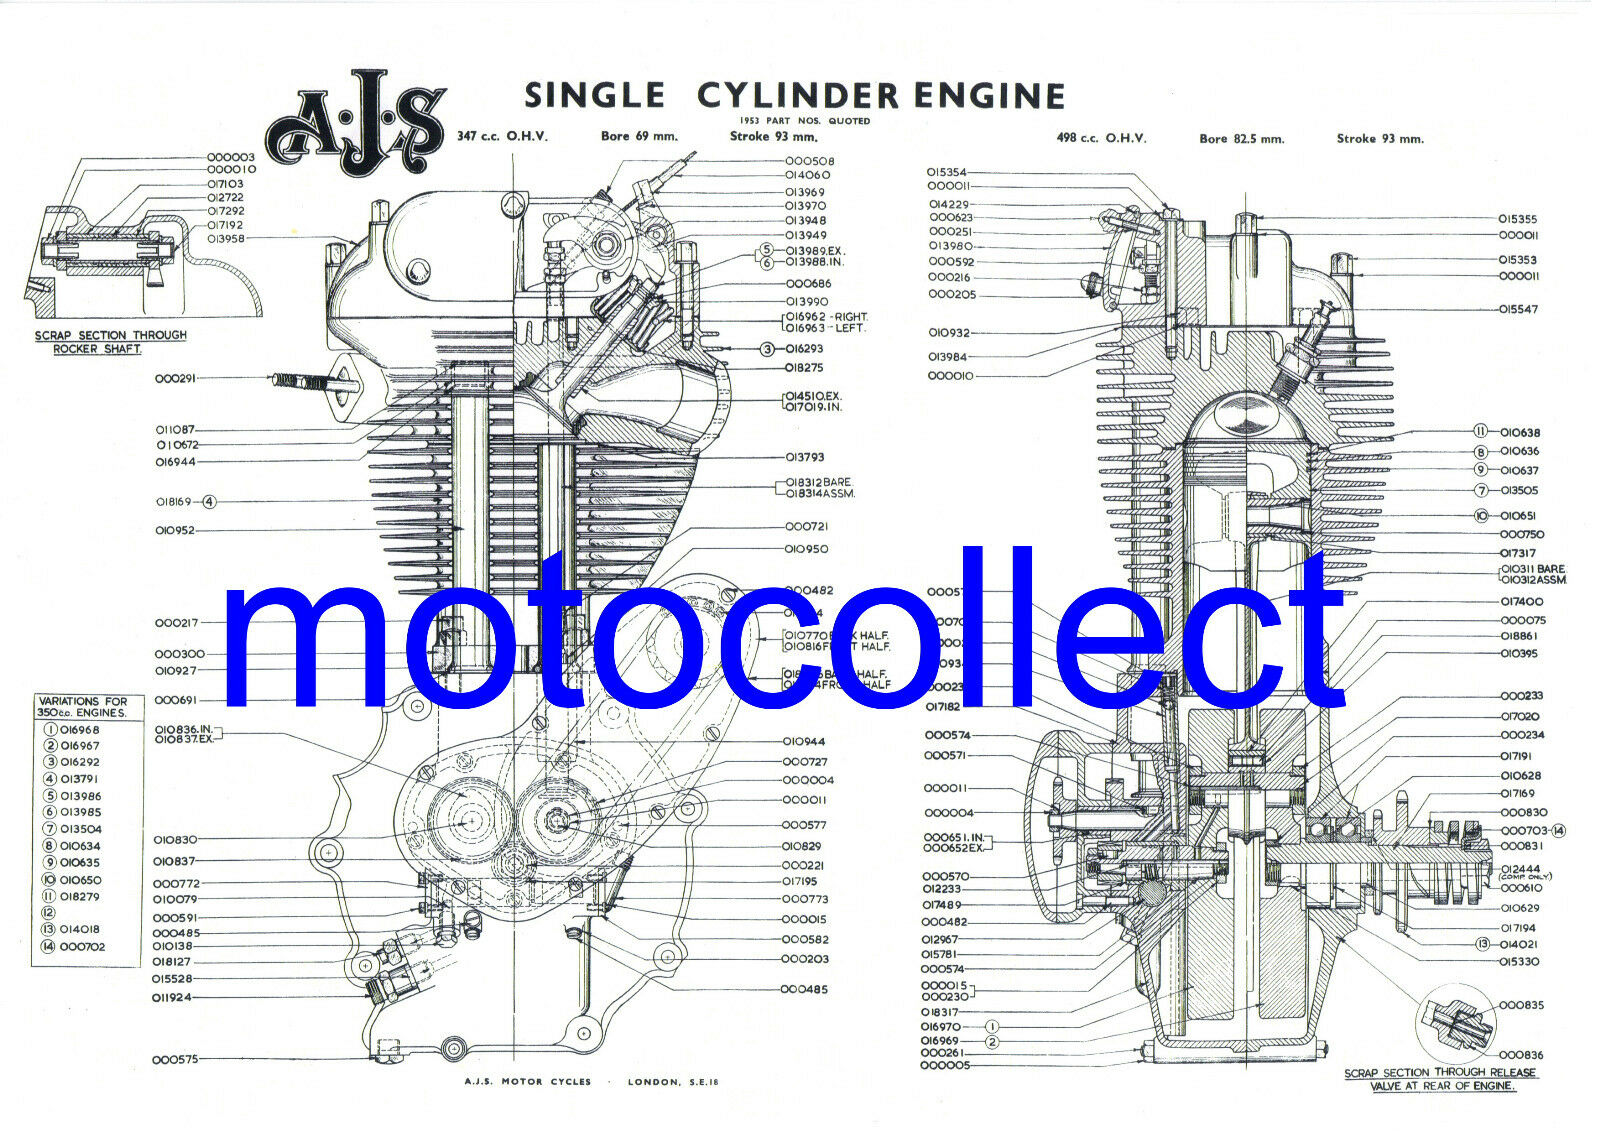 Royal Enfield Bullet Engine Exploded View Technical Drawinga3 Diagram Related Keywords Suggestions 420mm X 300mm Ebay